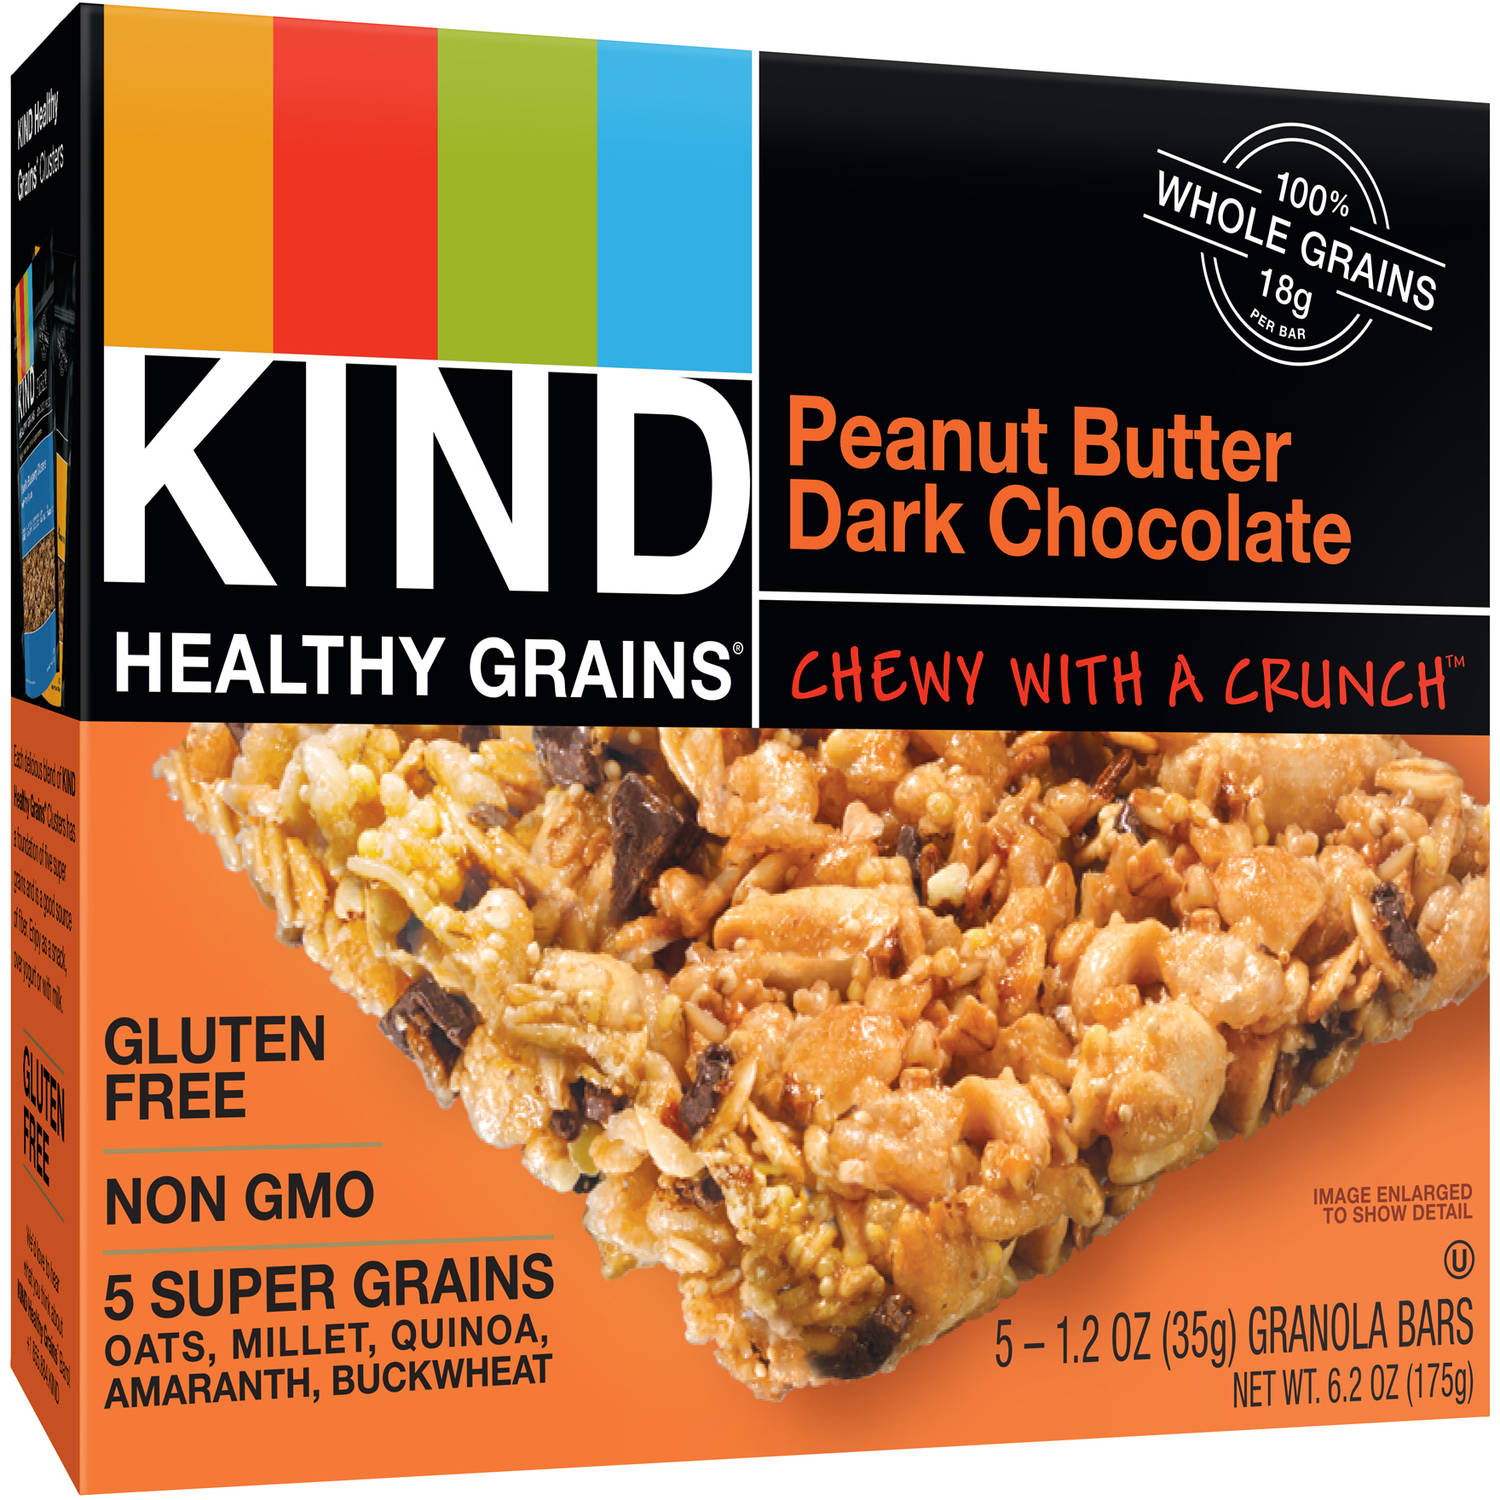 KIND Healthy Grains Bars, Peanut Butter Dark Chocolate, 1.2 oz, 40 Count